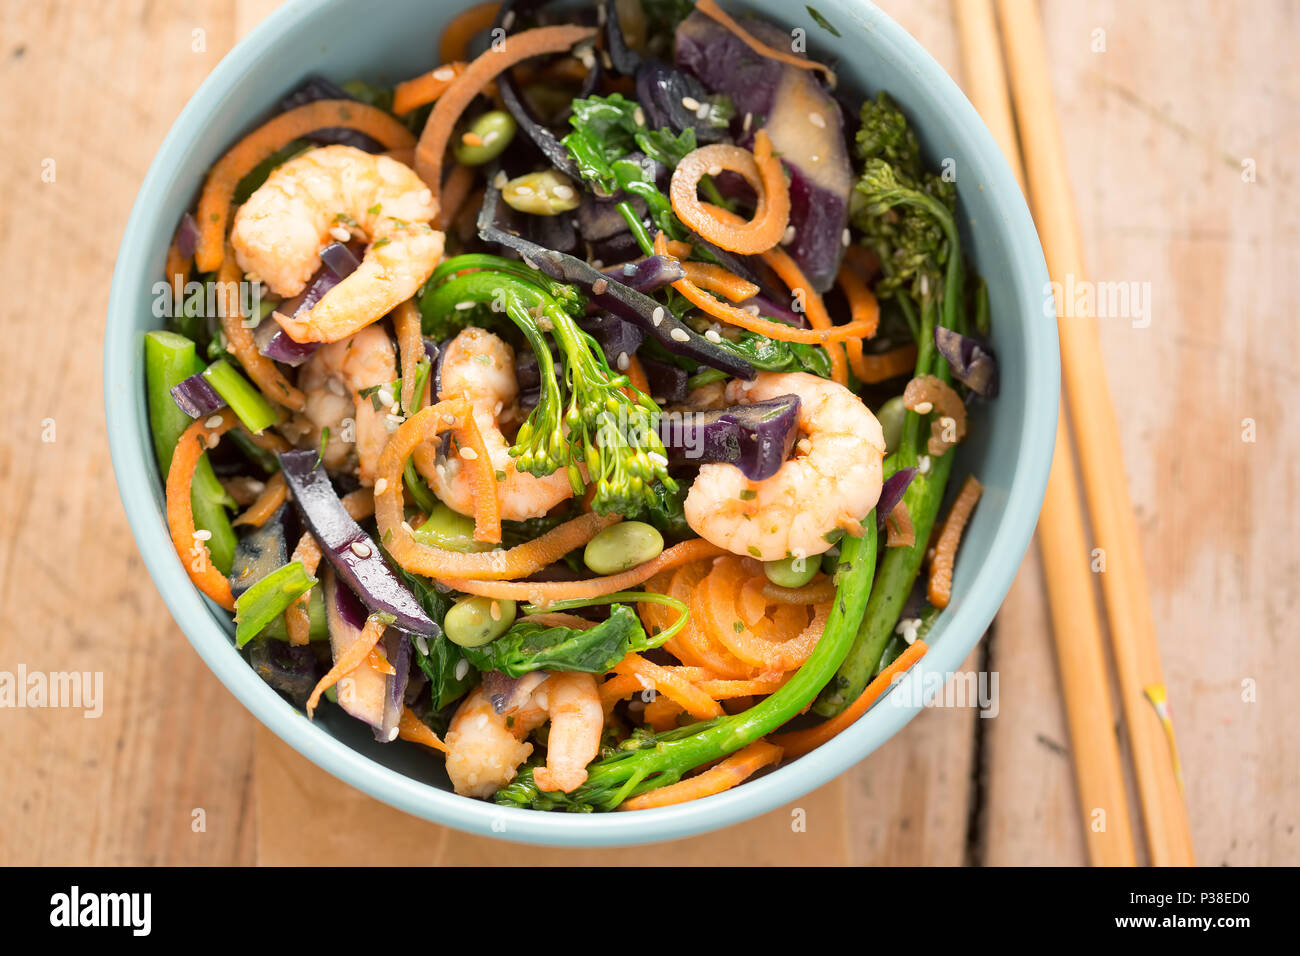 Stir fry with carrots, red cabbage, broccoli, kale, edamame, spring onions, seeds & prawns - Stock Image